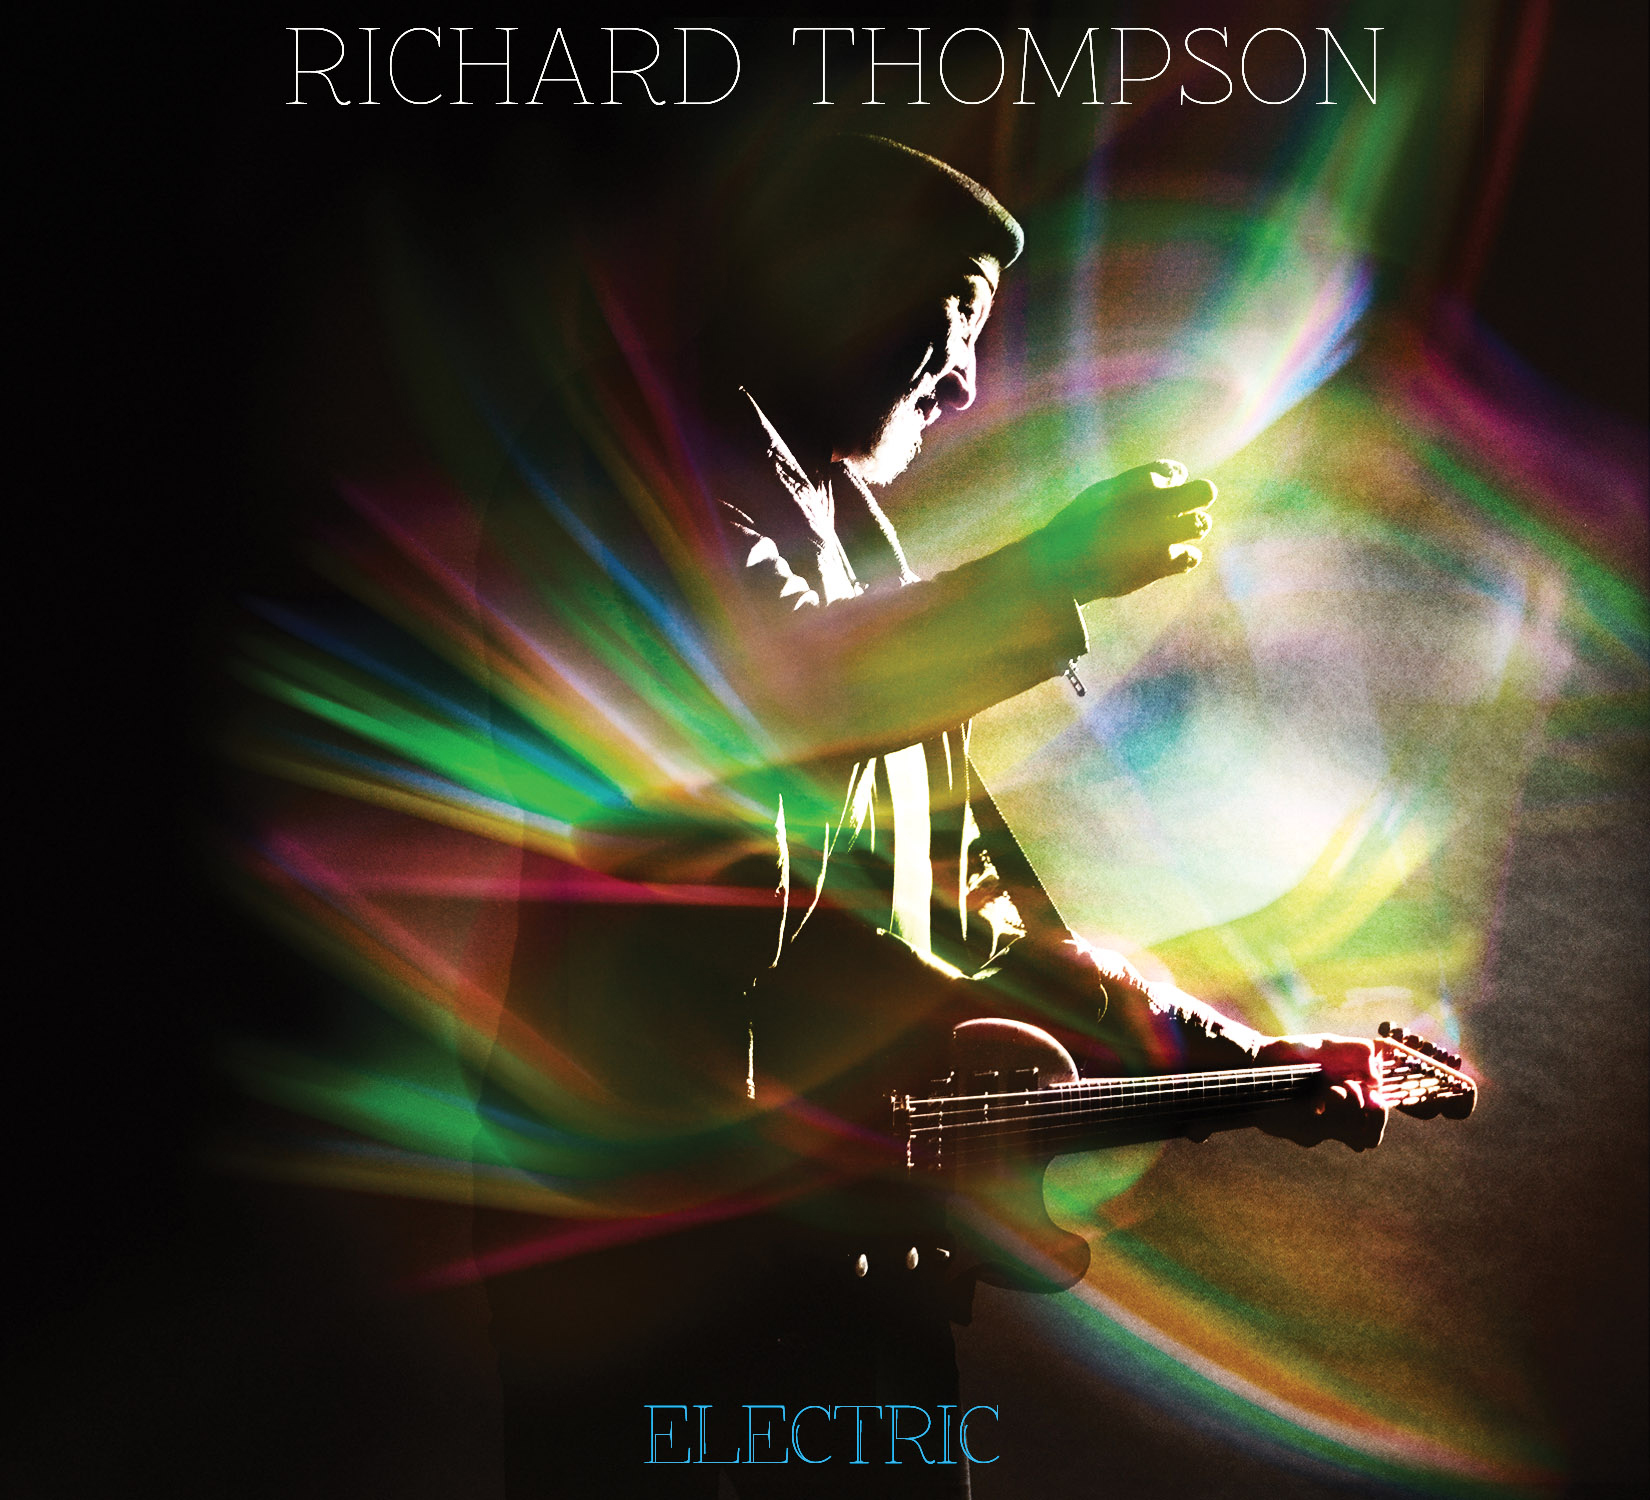 Richard Thompson – Electric Reviews